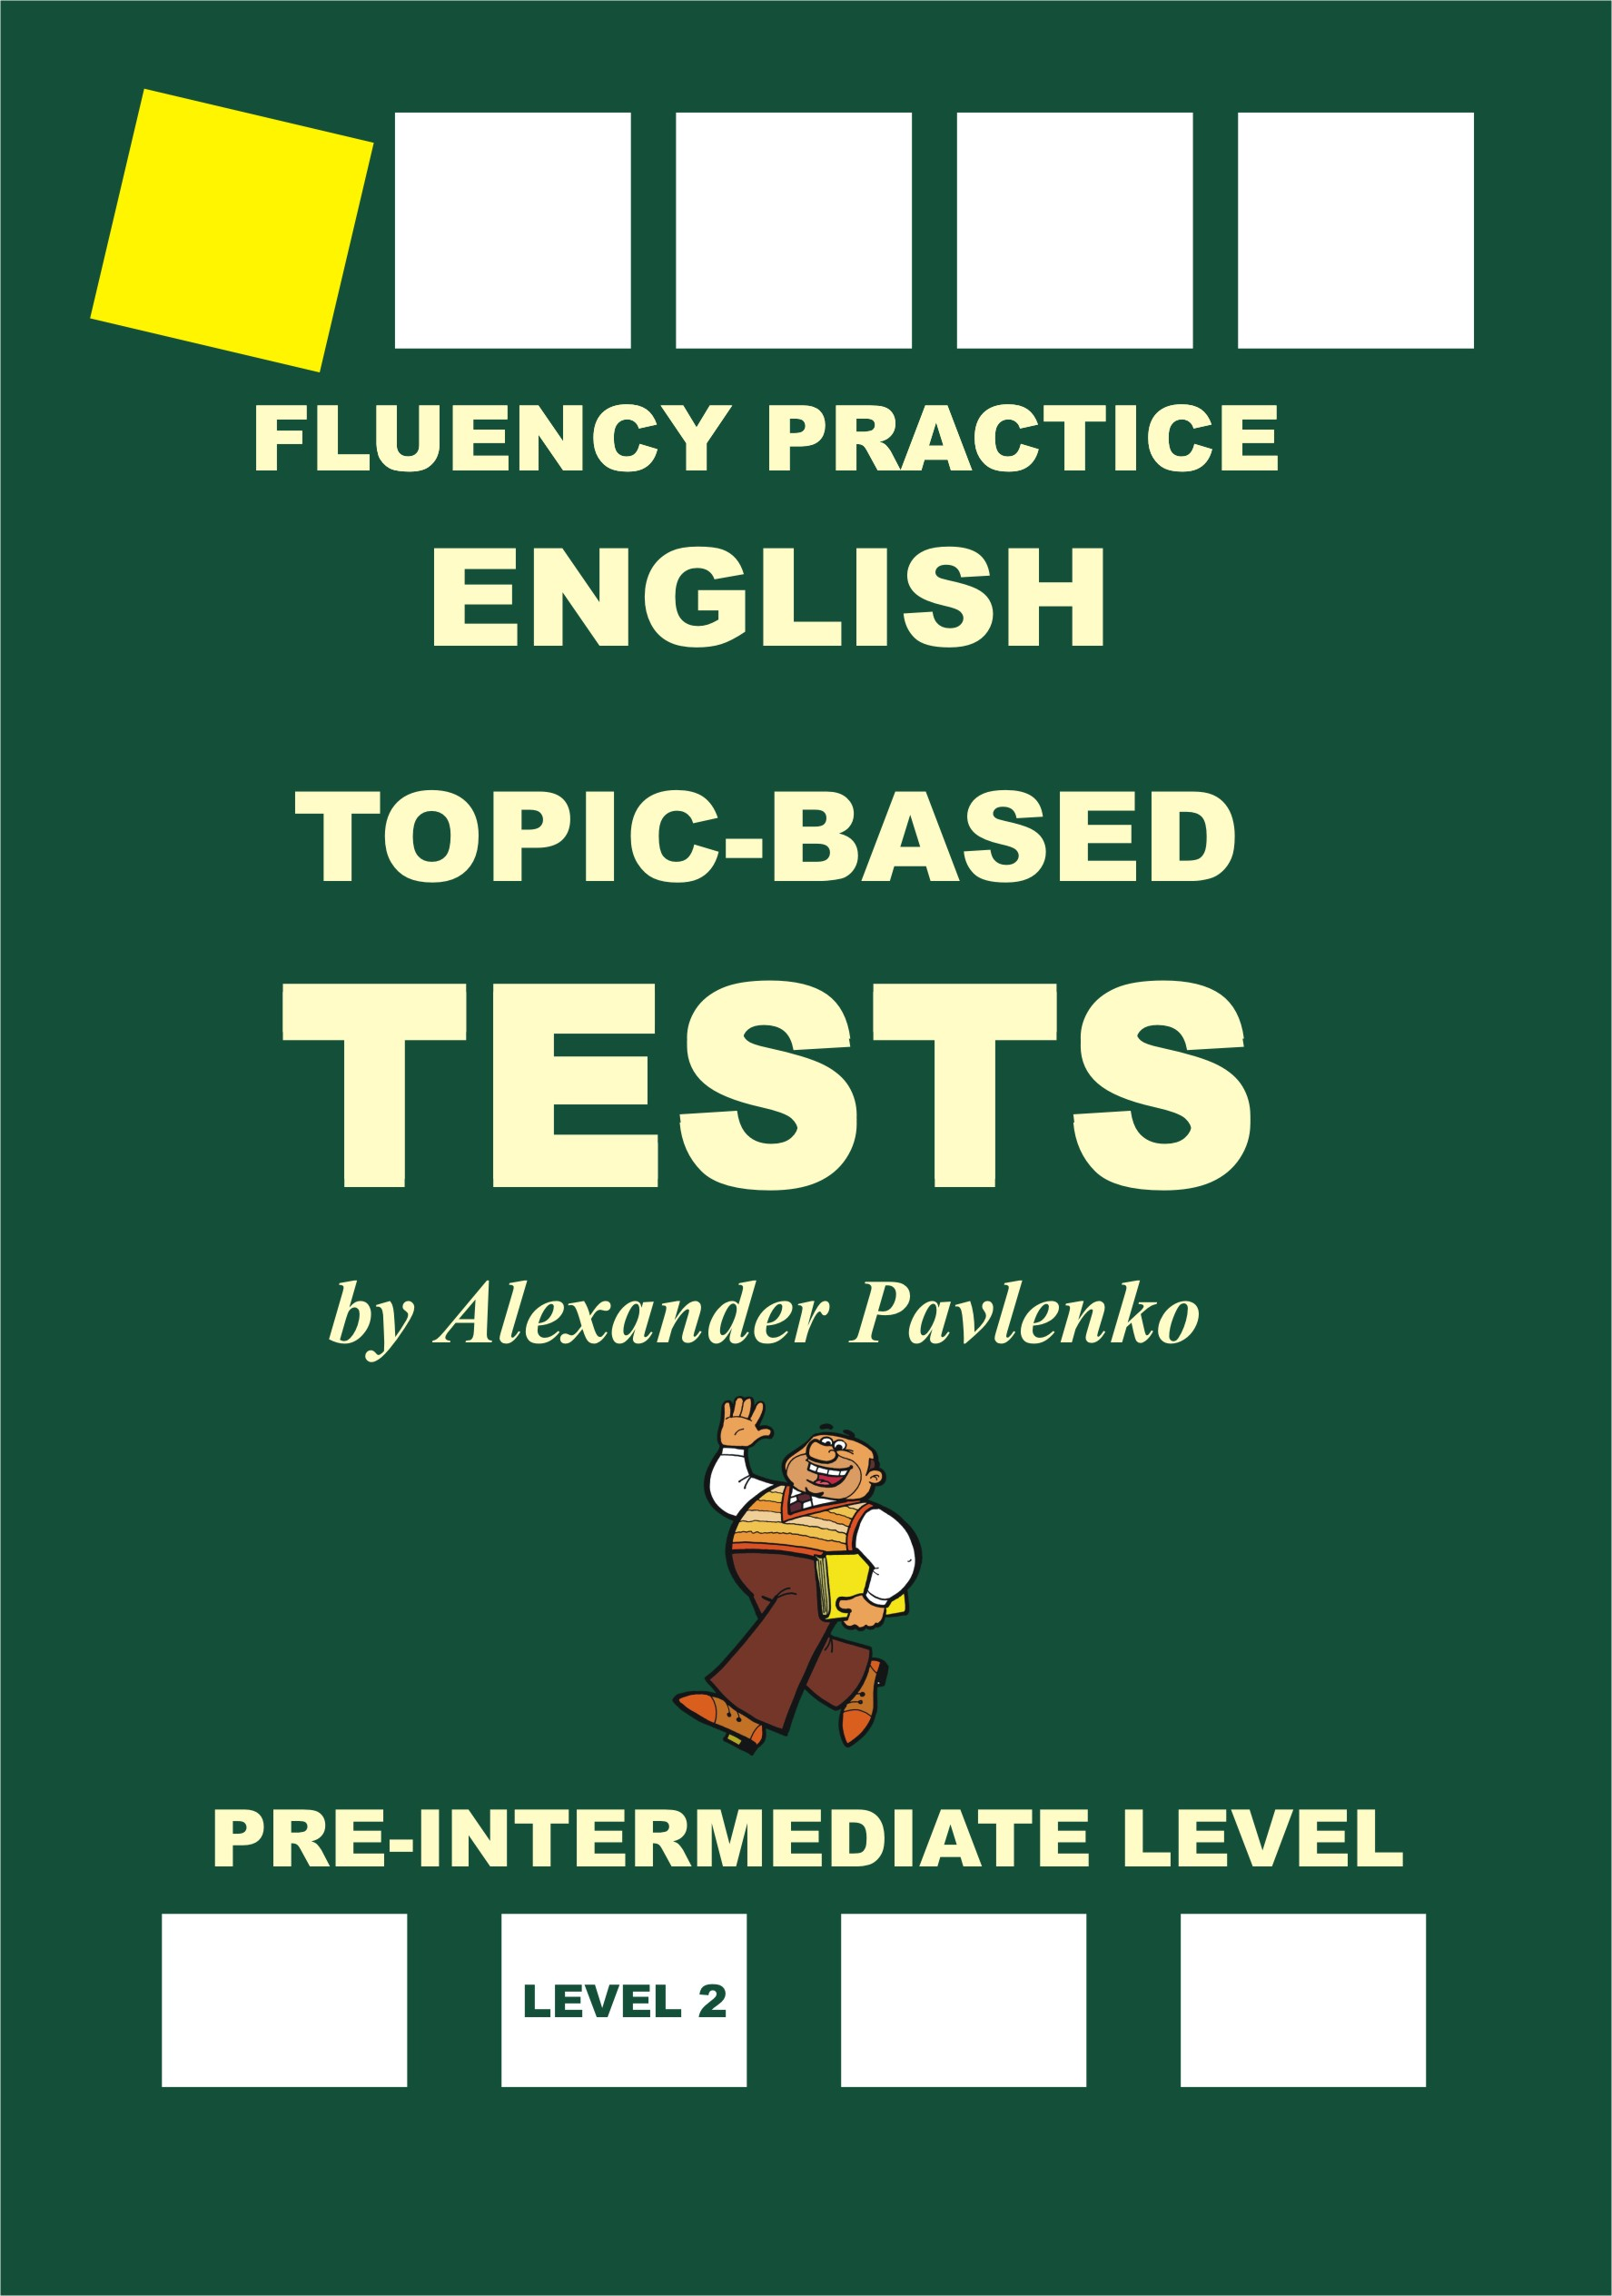 English, Topic-Based Tests, Pre-Intermediate Level, Fluency Practice, an  Ebook by Alexander Pavlenko